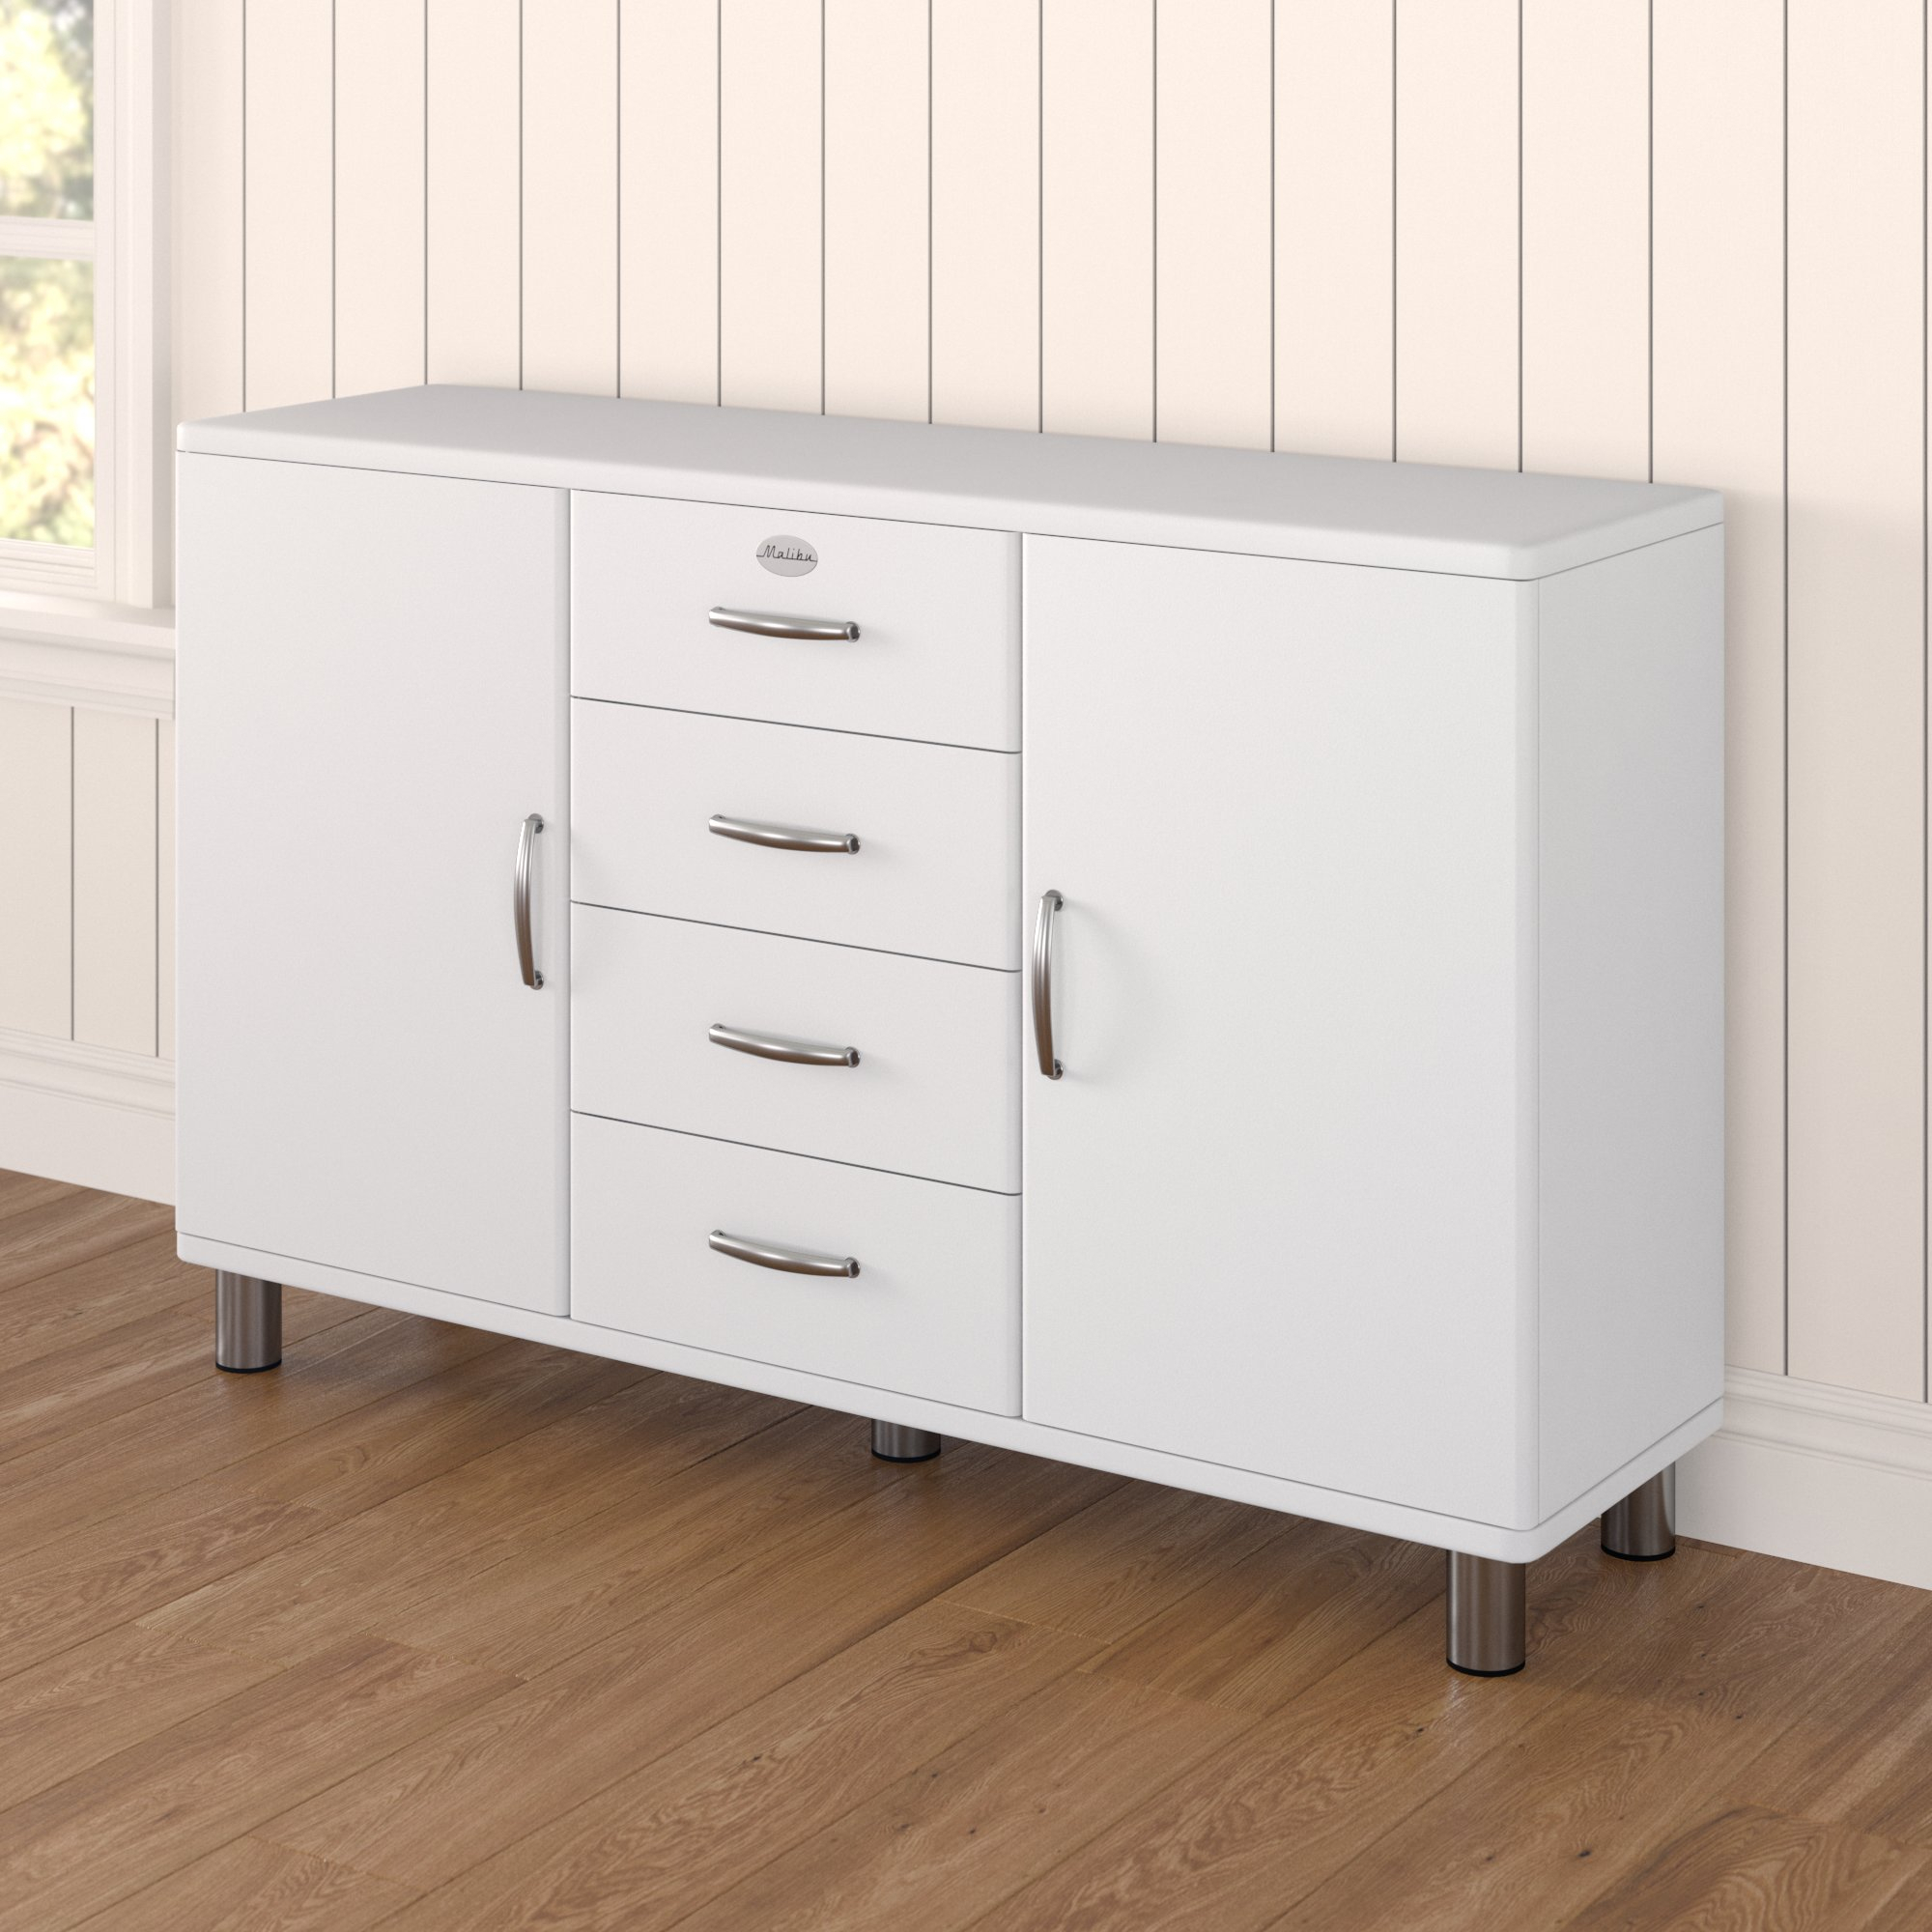 Inspiration about Malibu 2 Door 4 Drawer Sideboard Throughout Most Current Malibu 2 Door 4 Drawer Sideboards (#2 of 20)